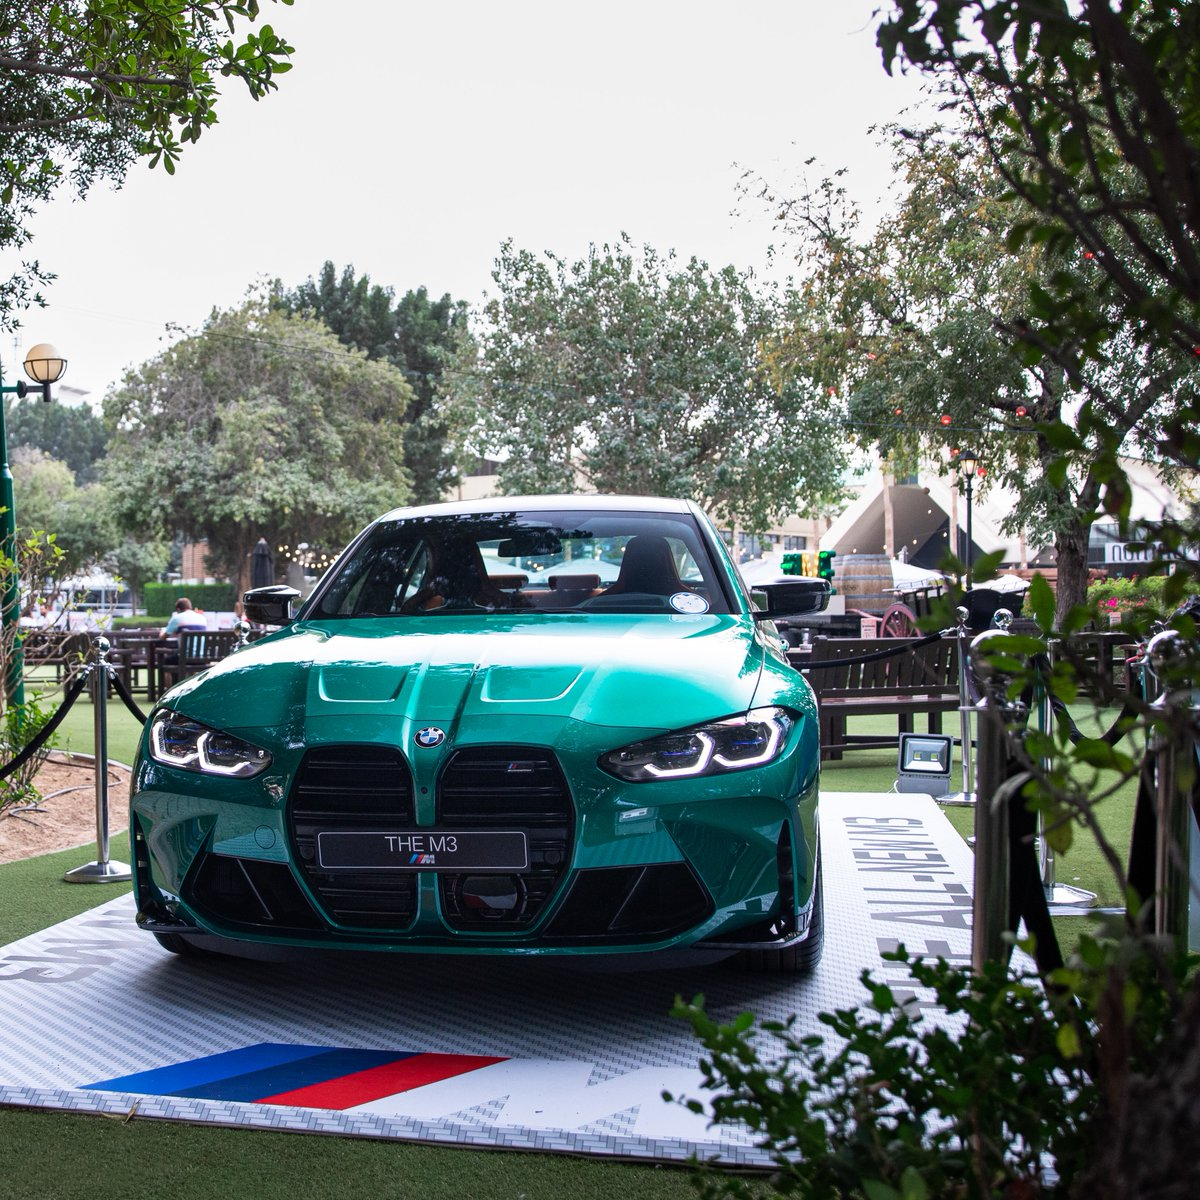 Why look for gold, when you can have it all green? 🍀   Happy St. Patrick's Day!  #BMWM3 #BMWAGMC  #StPatricksDay @DDFTennis #DDFTennis